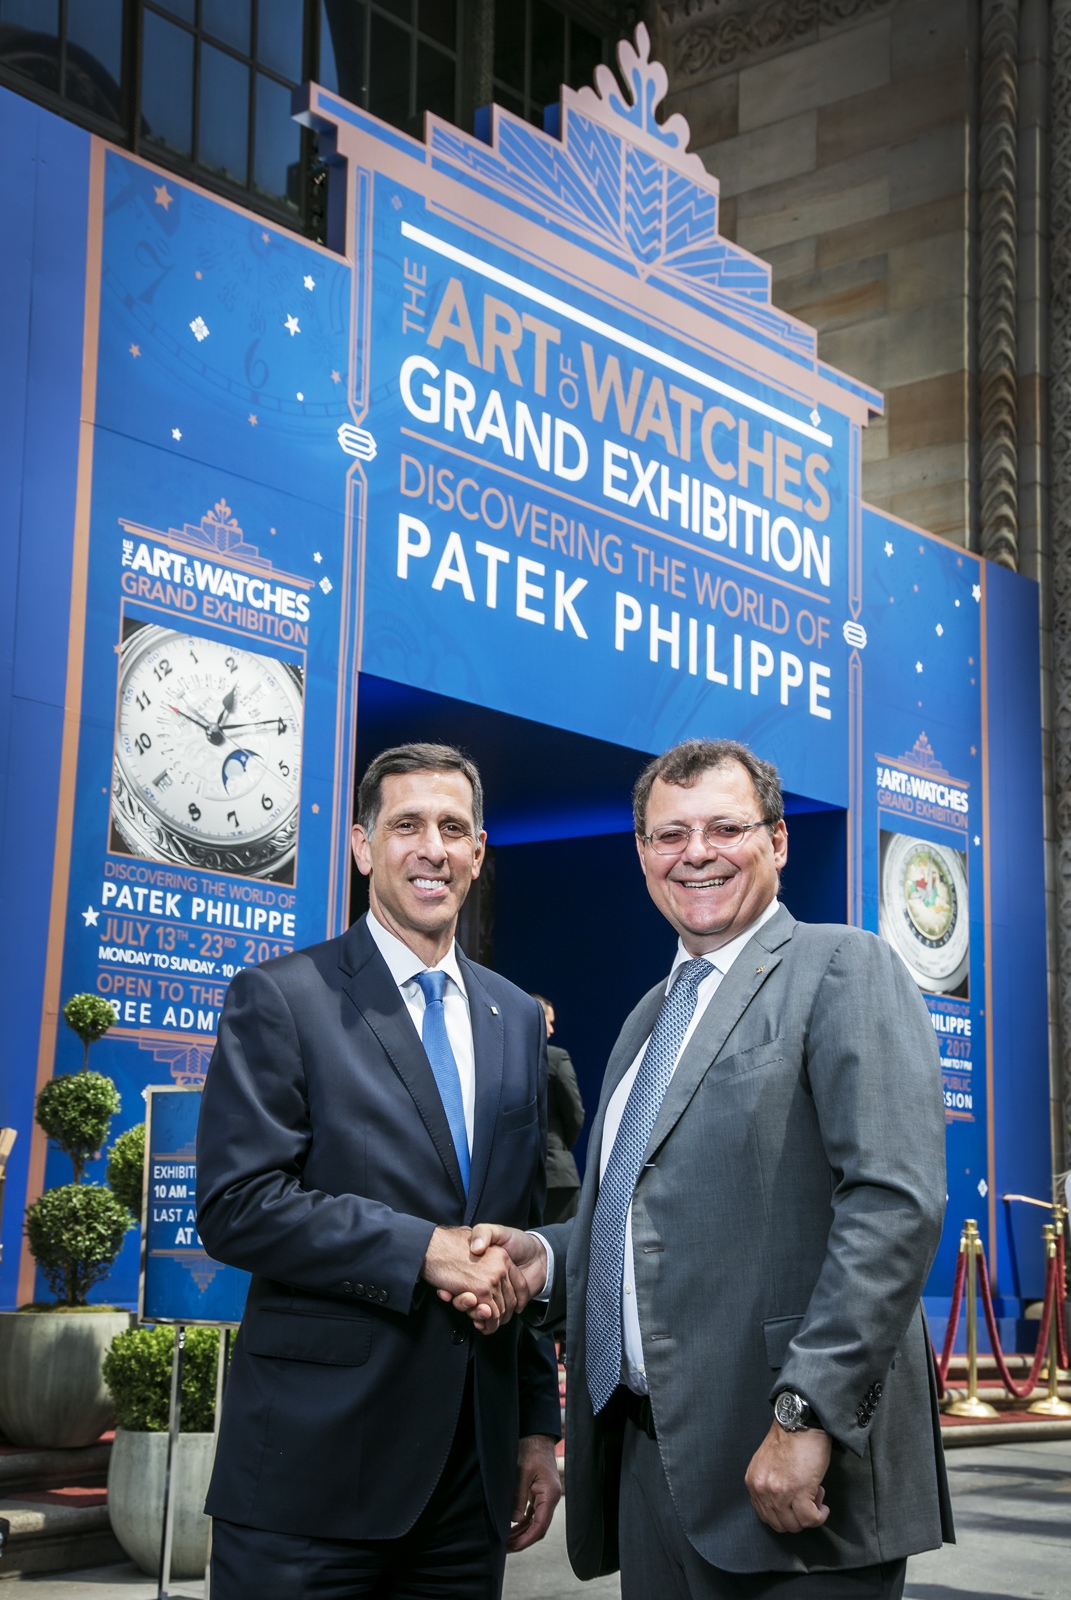 Patek Philippe The Art of Watches Grand Exhibition New York 2017 - Stern & Petinelli